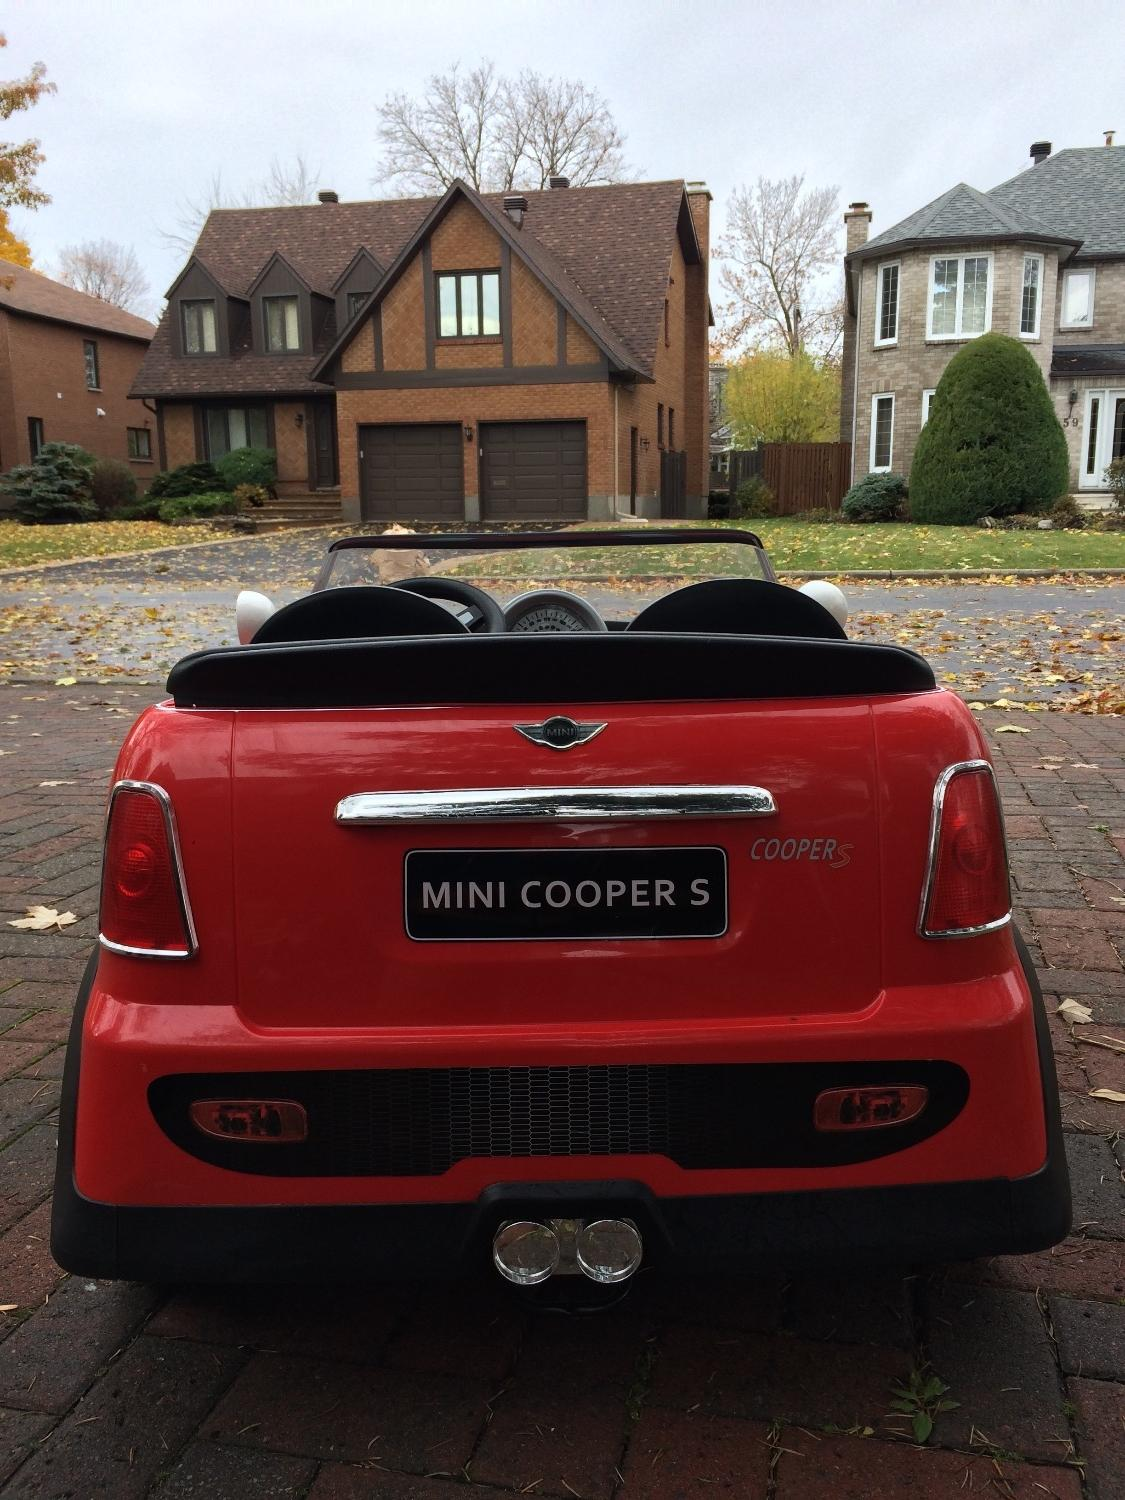 Best Mini Cooper Battery Ed Kids Car 2 Seater For In Dollard Des Ormeaux Quebec 2019